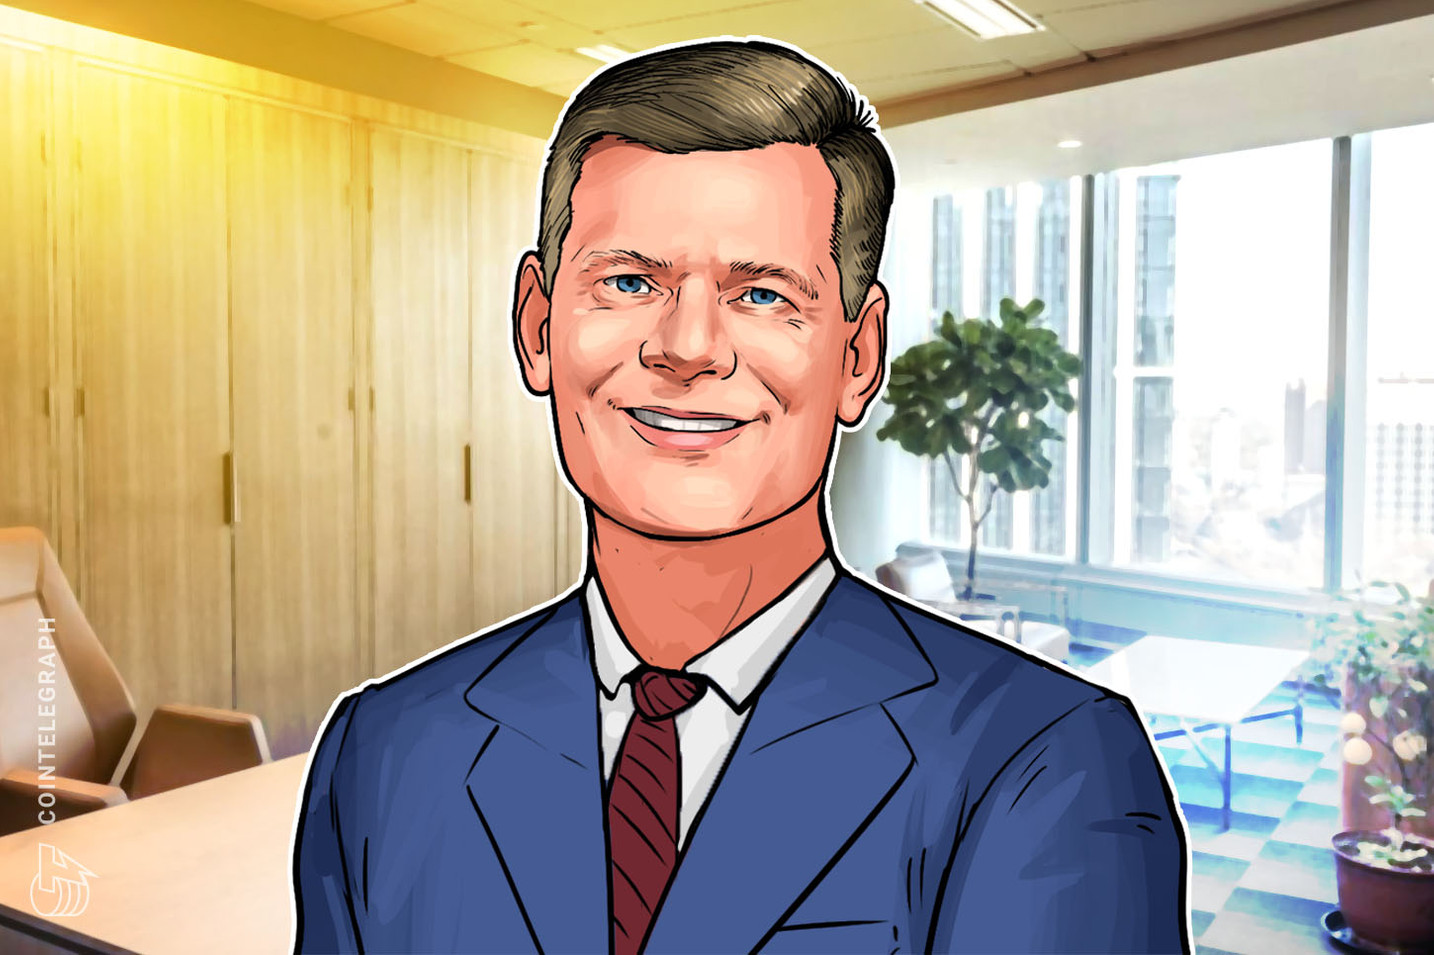 XRP, Stellar 'Too Closely Held' to Offer Fund Investors — Mark Yusko